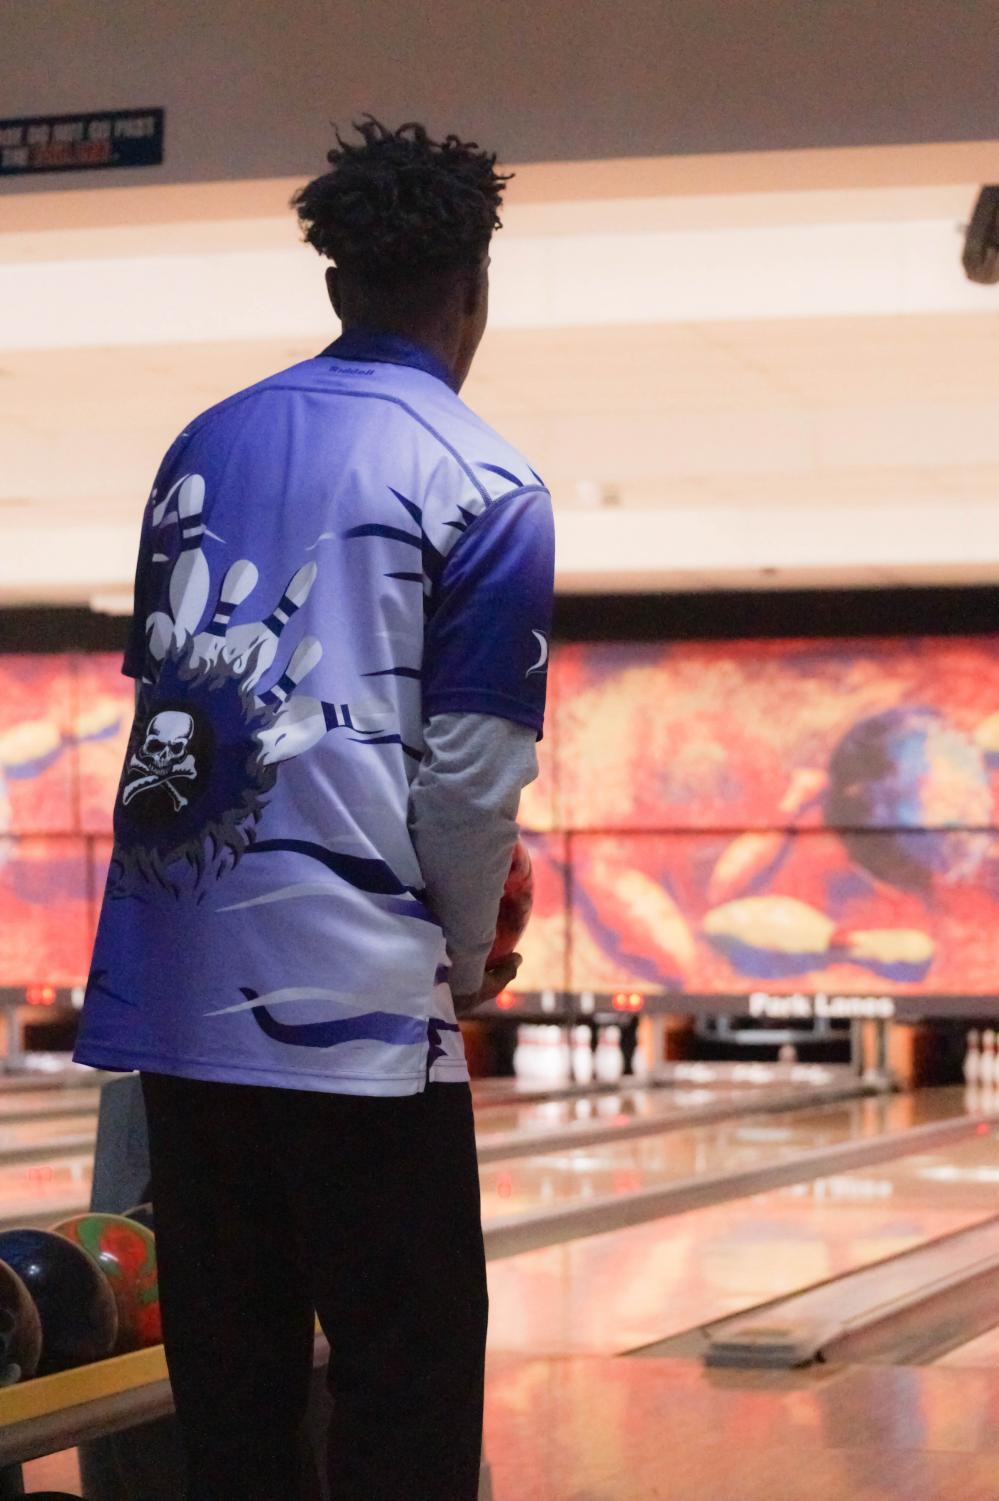 Looking to pin a win, senior Aaron Slaughter preps for a frame Jan. 10 at Park Lanes in Shawnee. Slaughter placed eighth at Regionals and